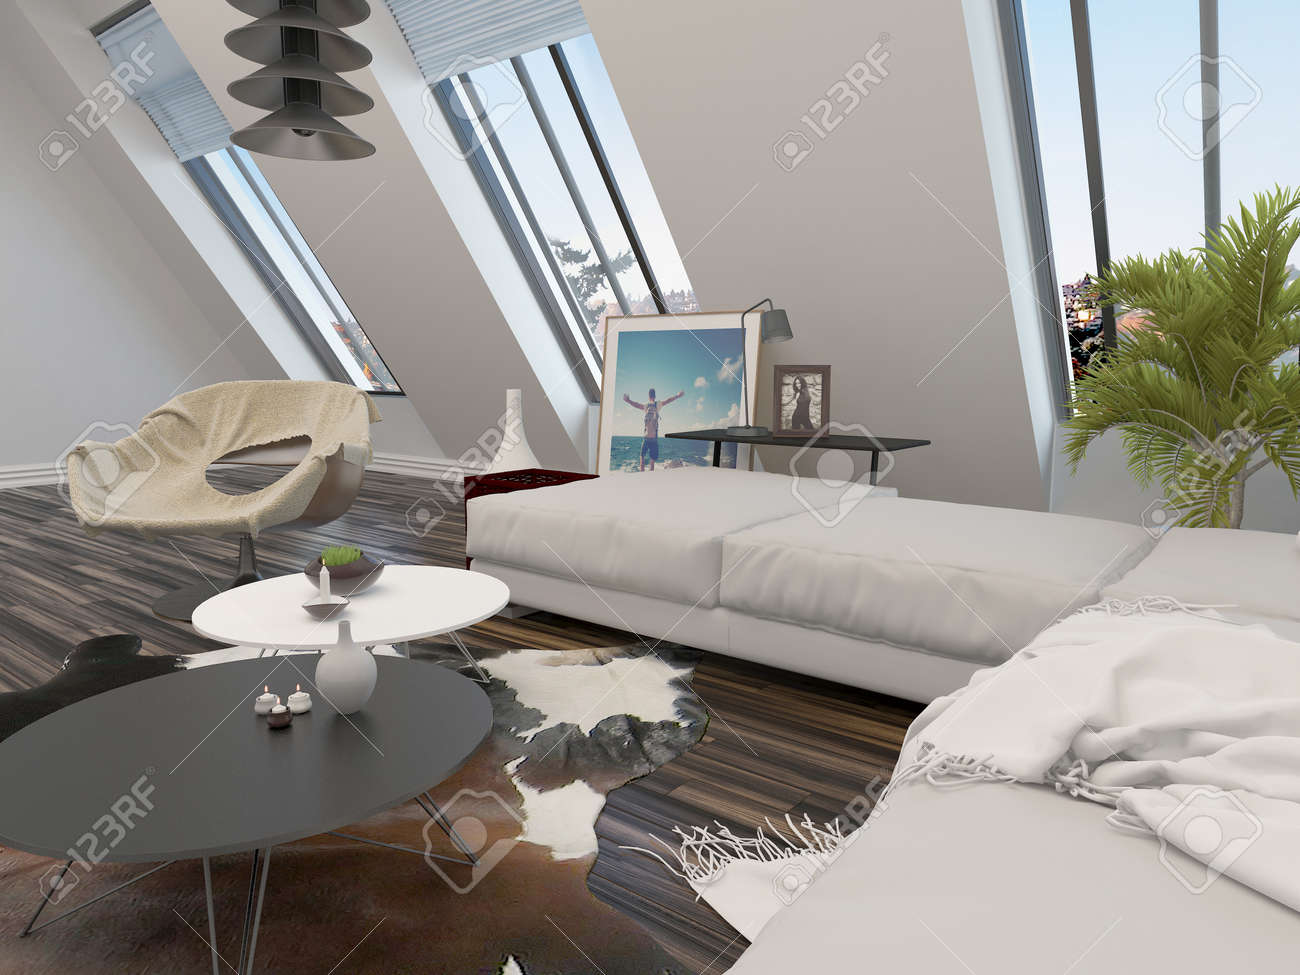 Bright Airy Modern Living Room Interior With A Cream Modular Corner Lounge Suite And Large Sloping